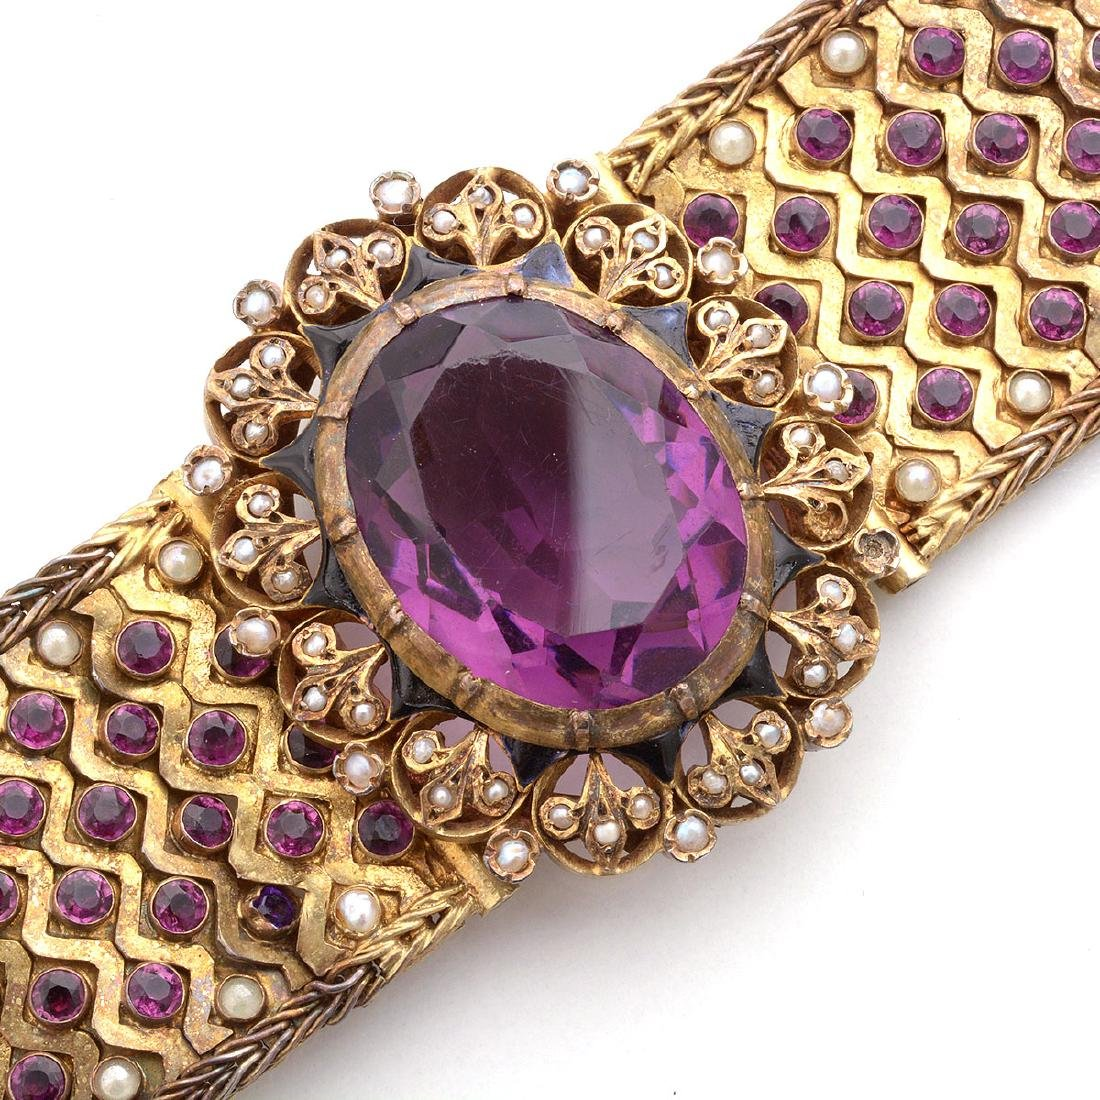 Hungarian Purple Glass, Seed Pearl, Enamel, Silver-Gilt - 2